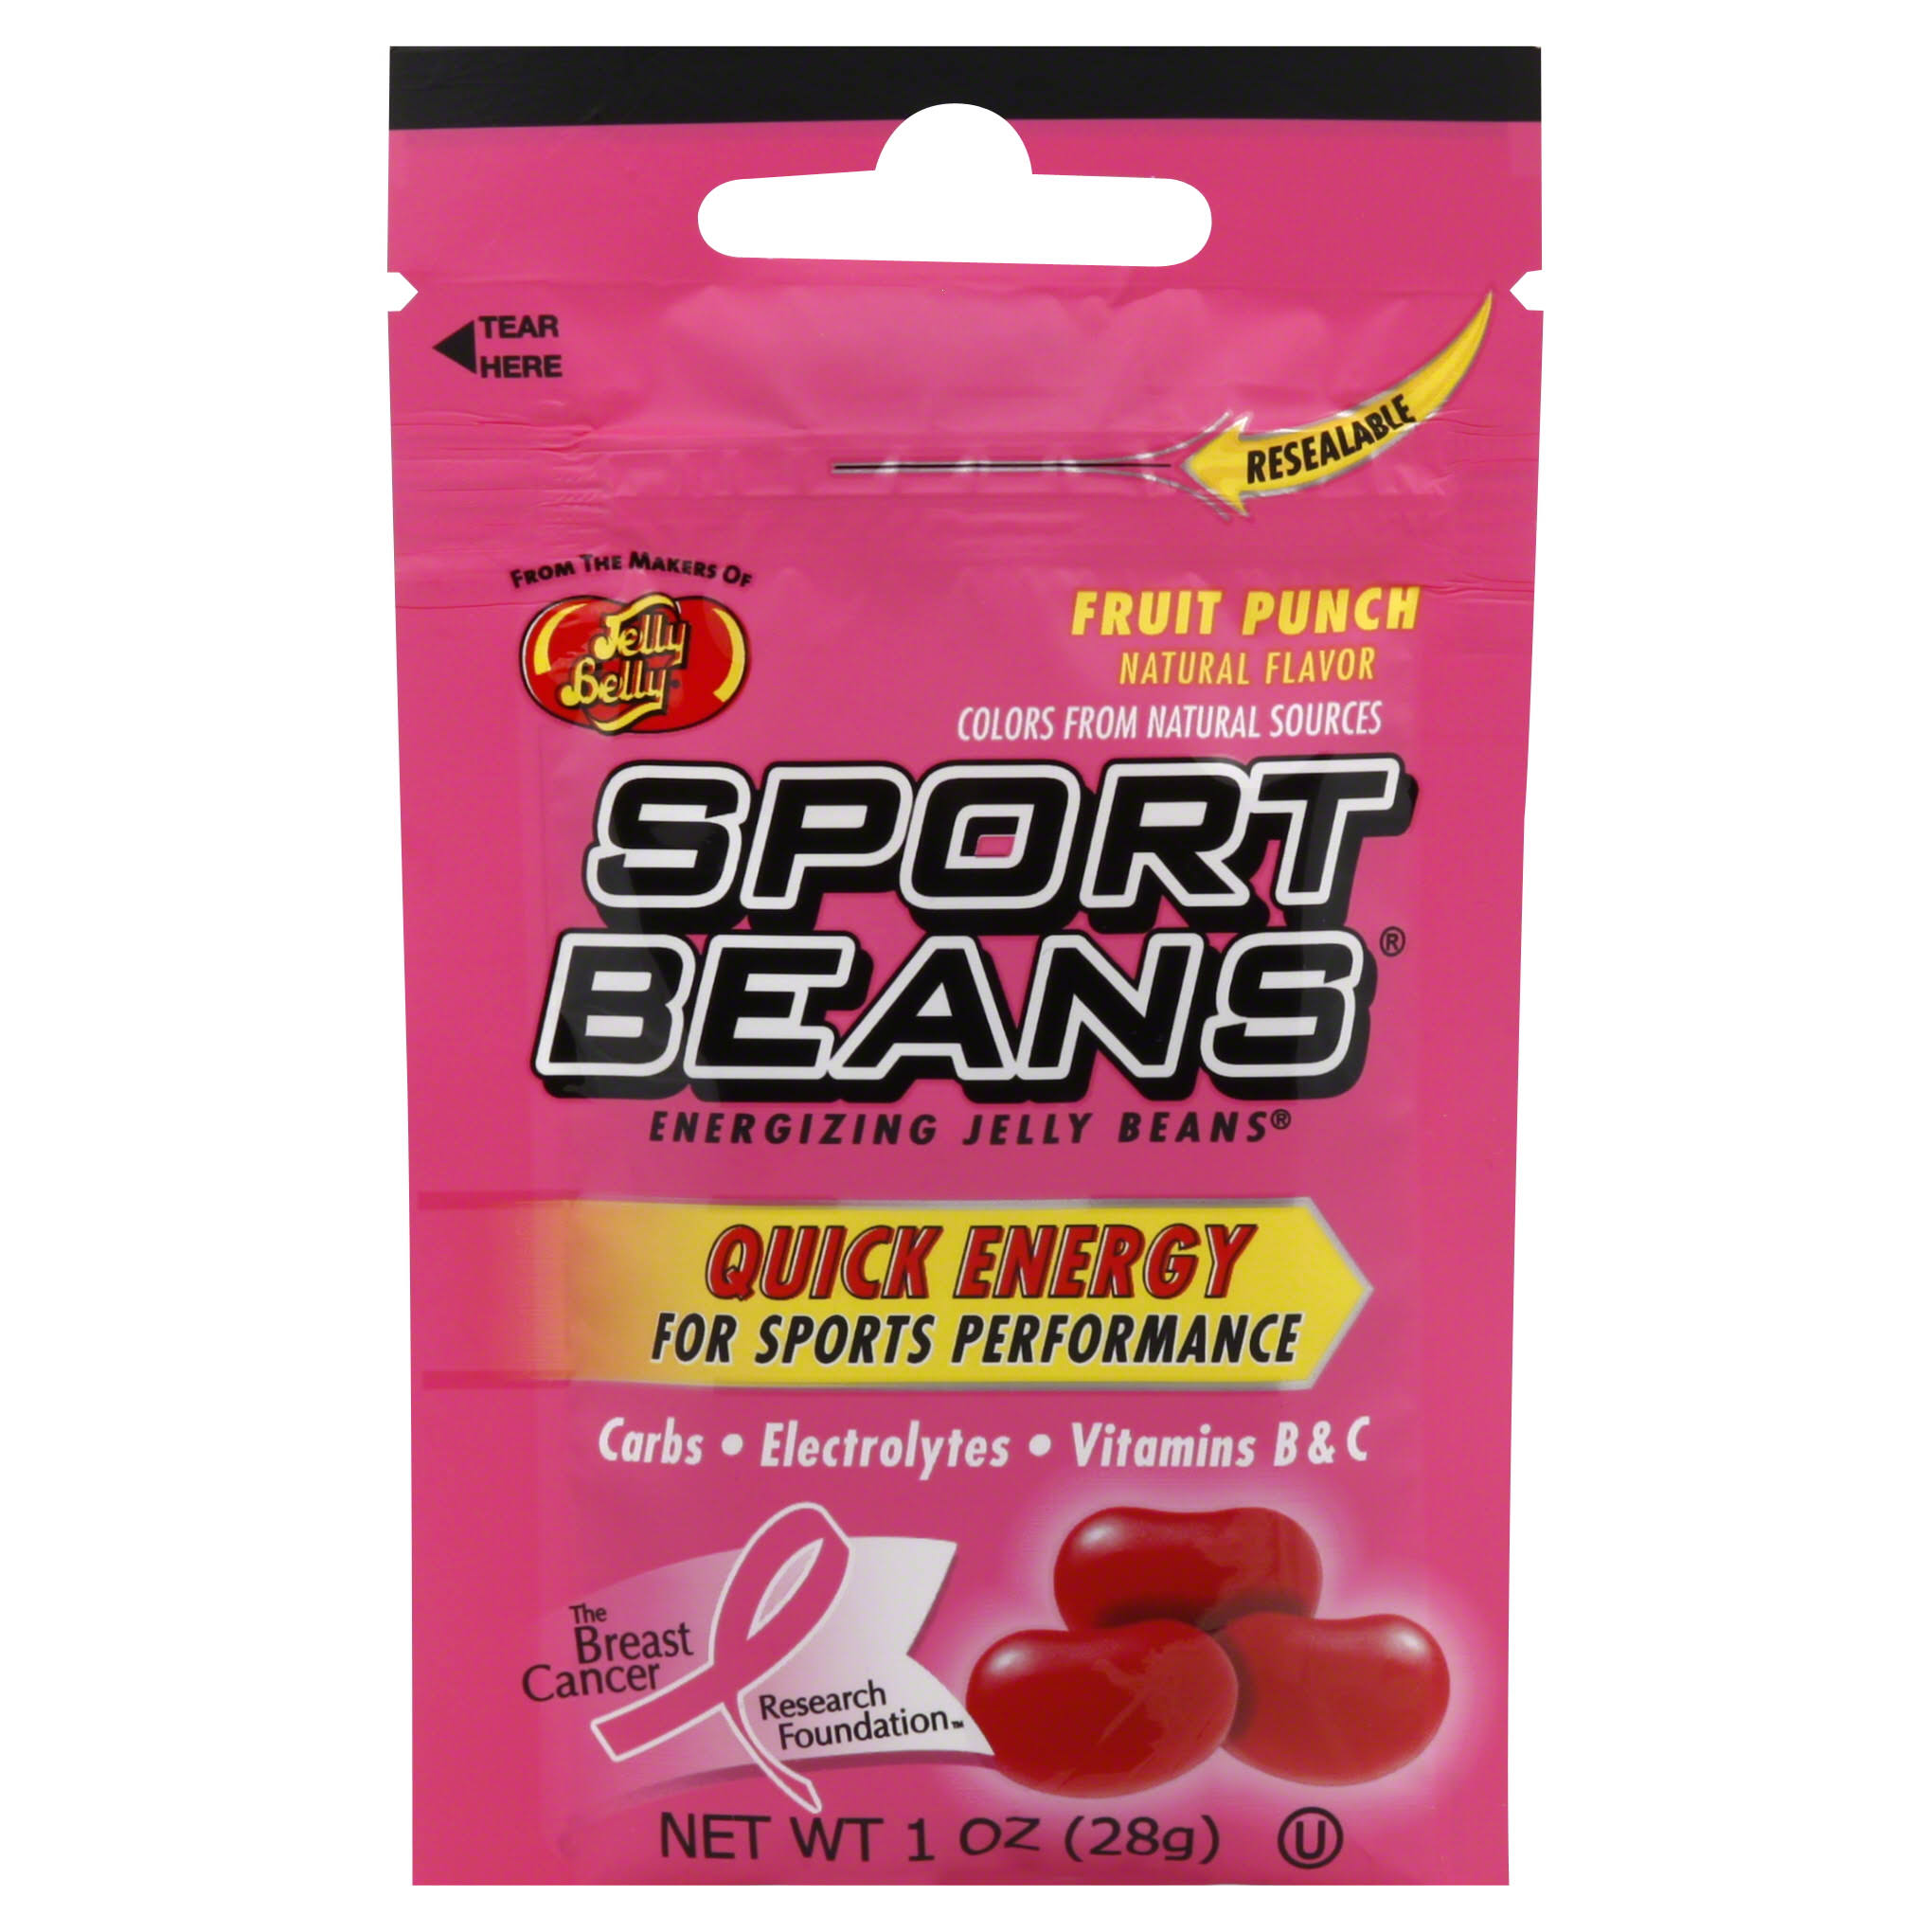 Jelly Belly Sport Beans Energizing Jelly Beans - Fruit Punch